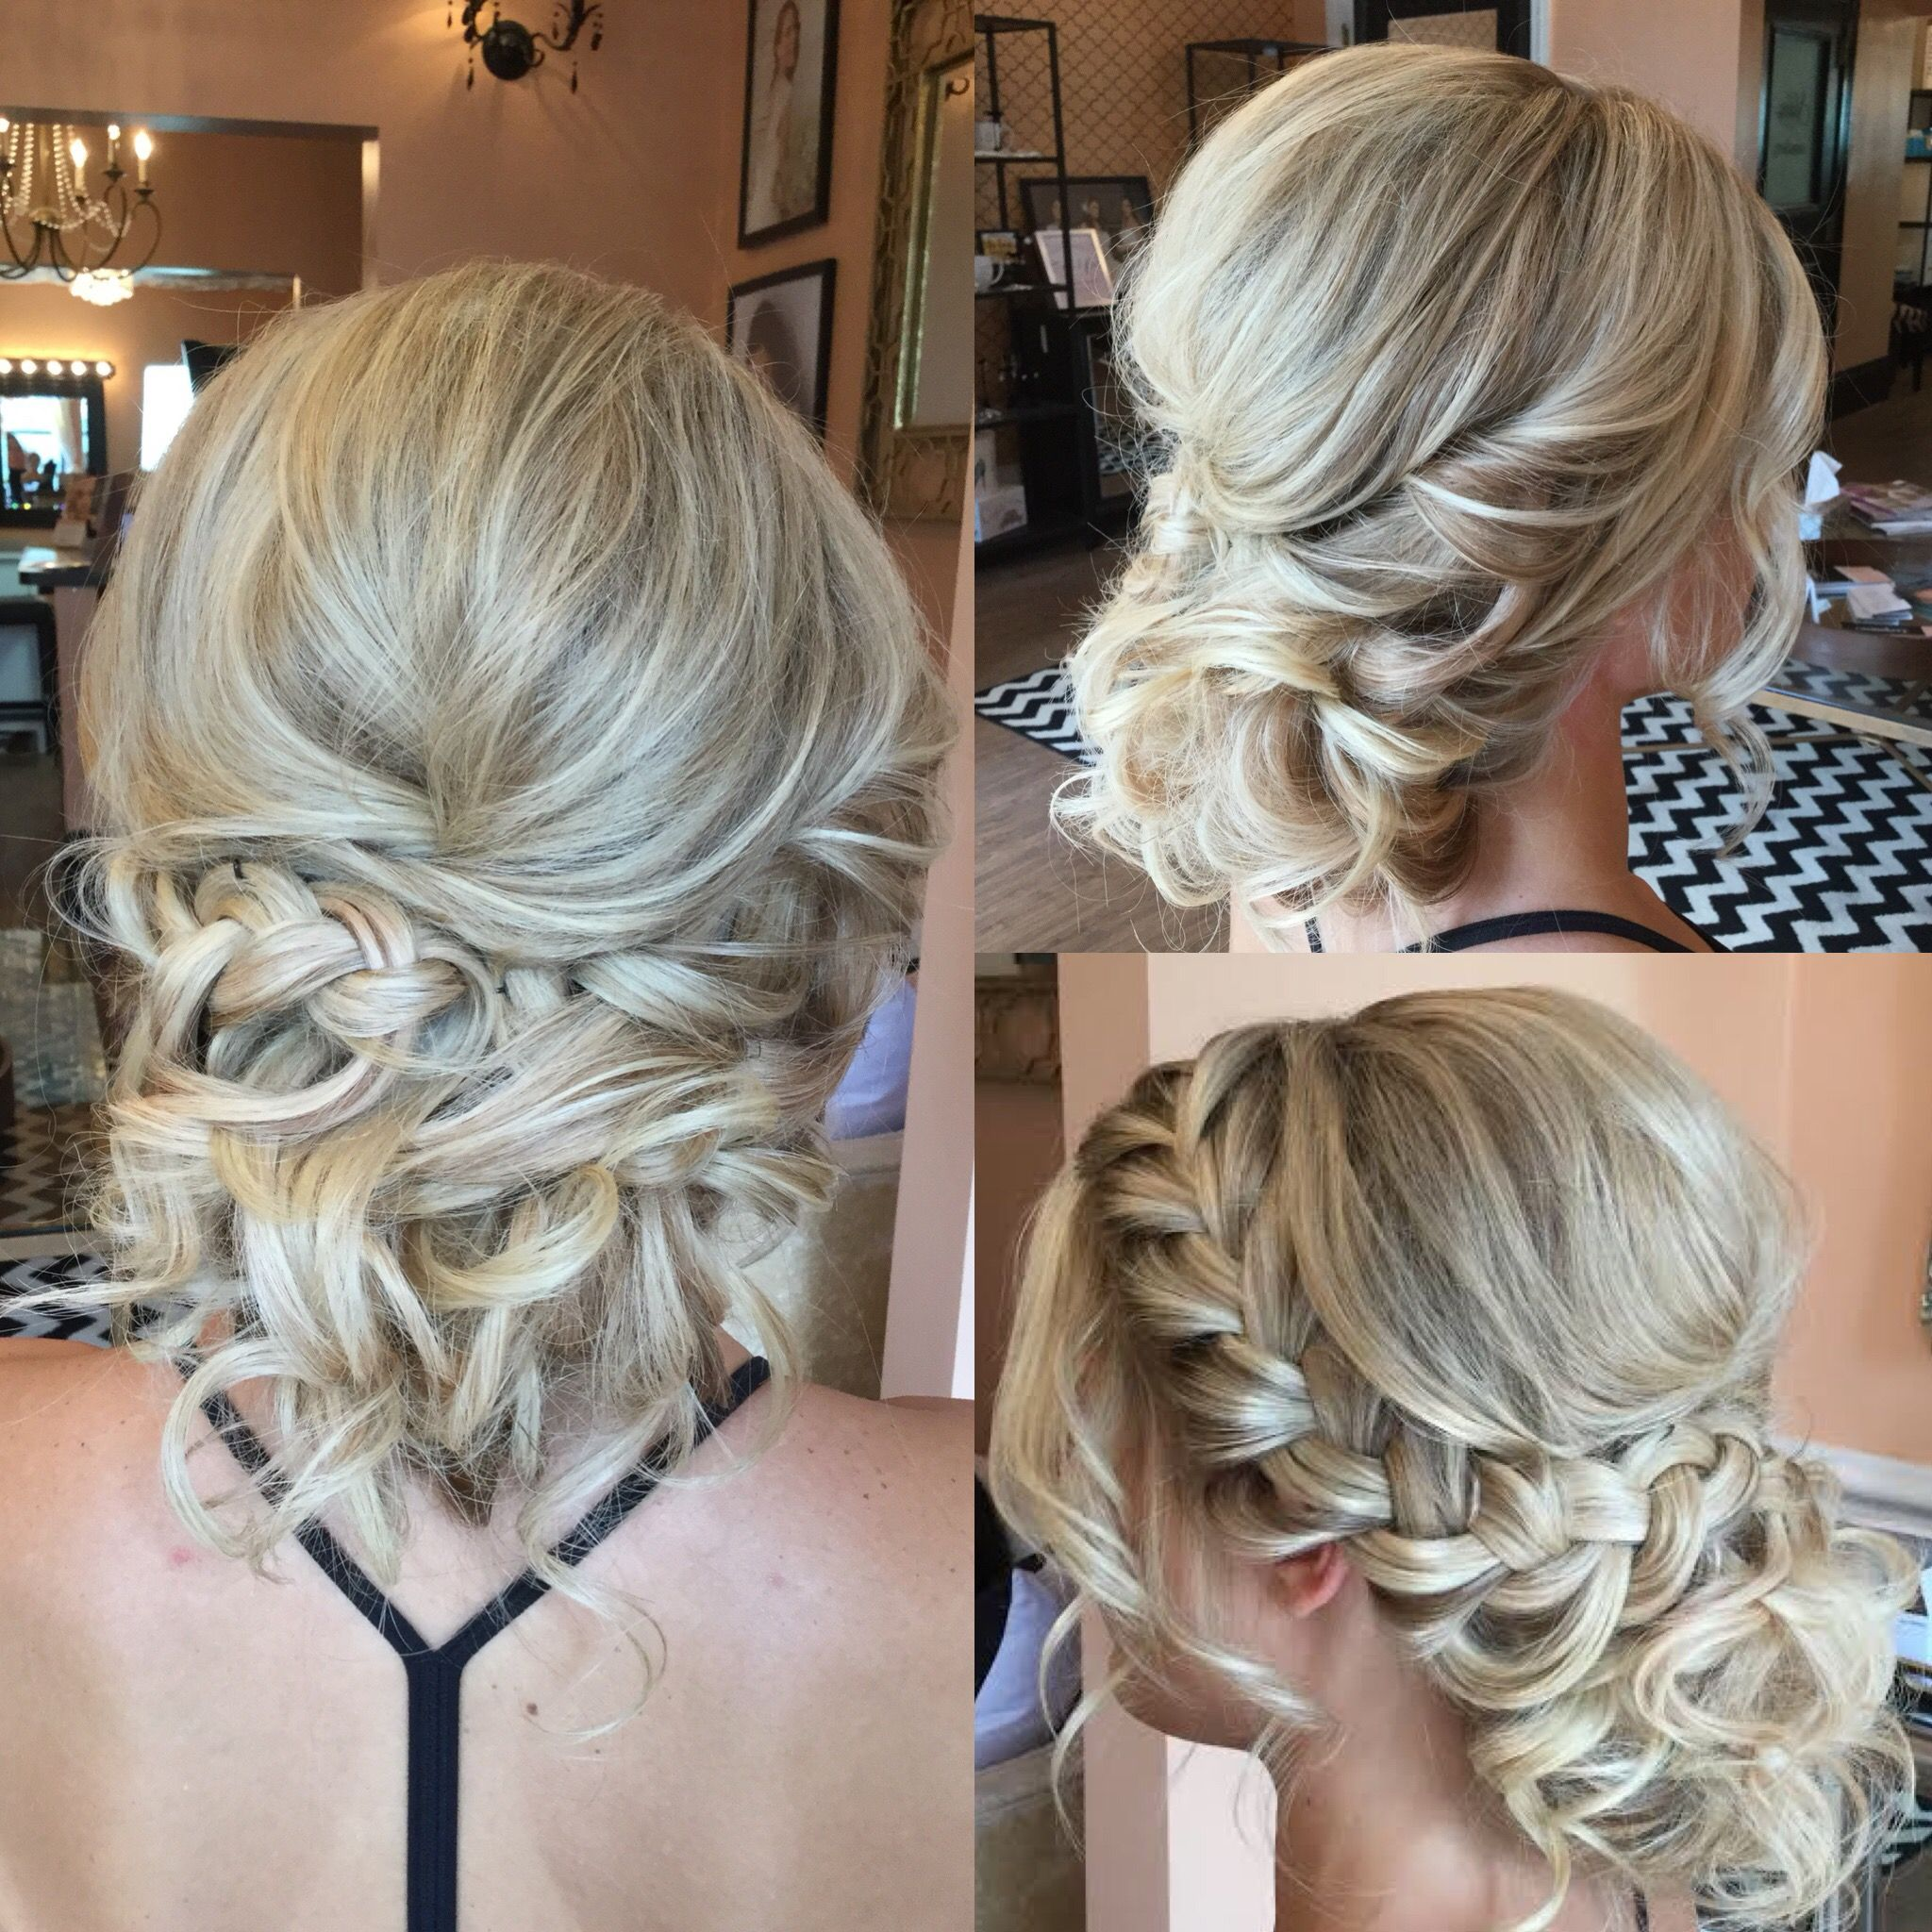 textured up-do for blondes with curls and side braid. bridal